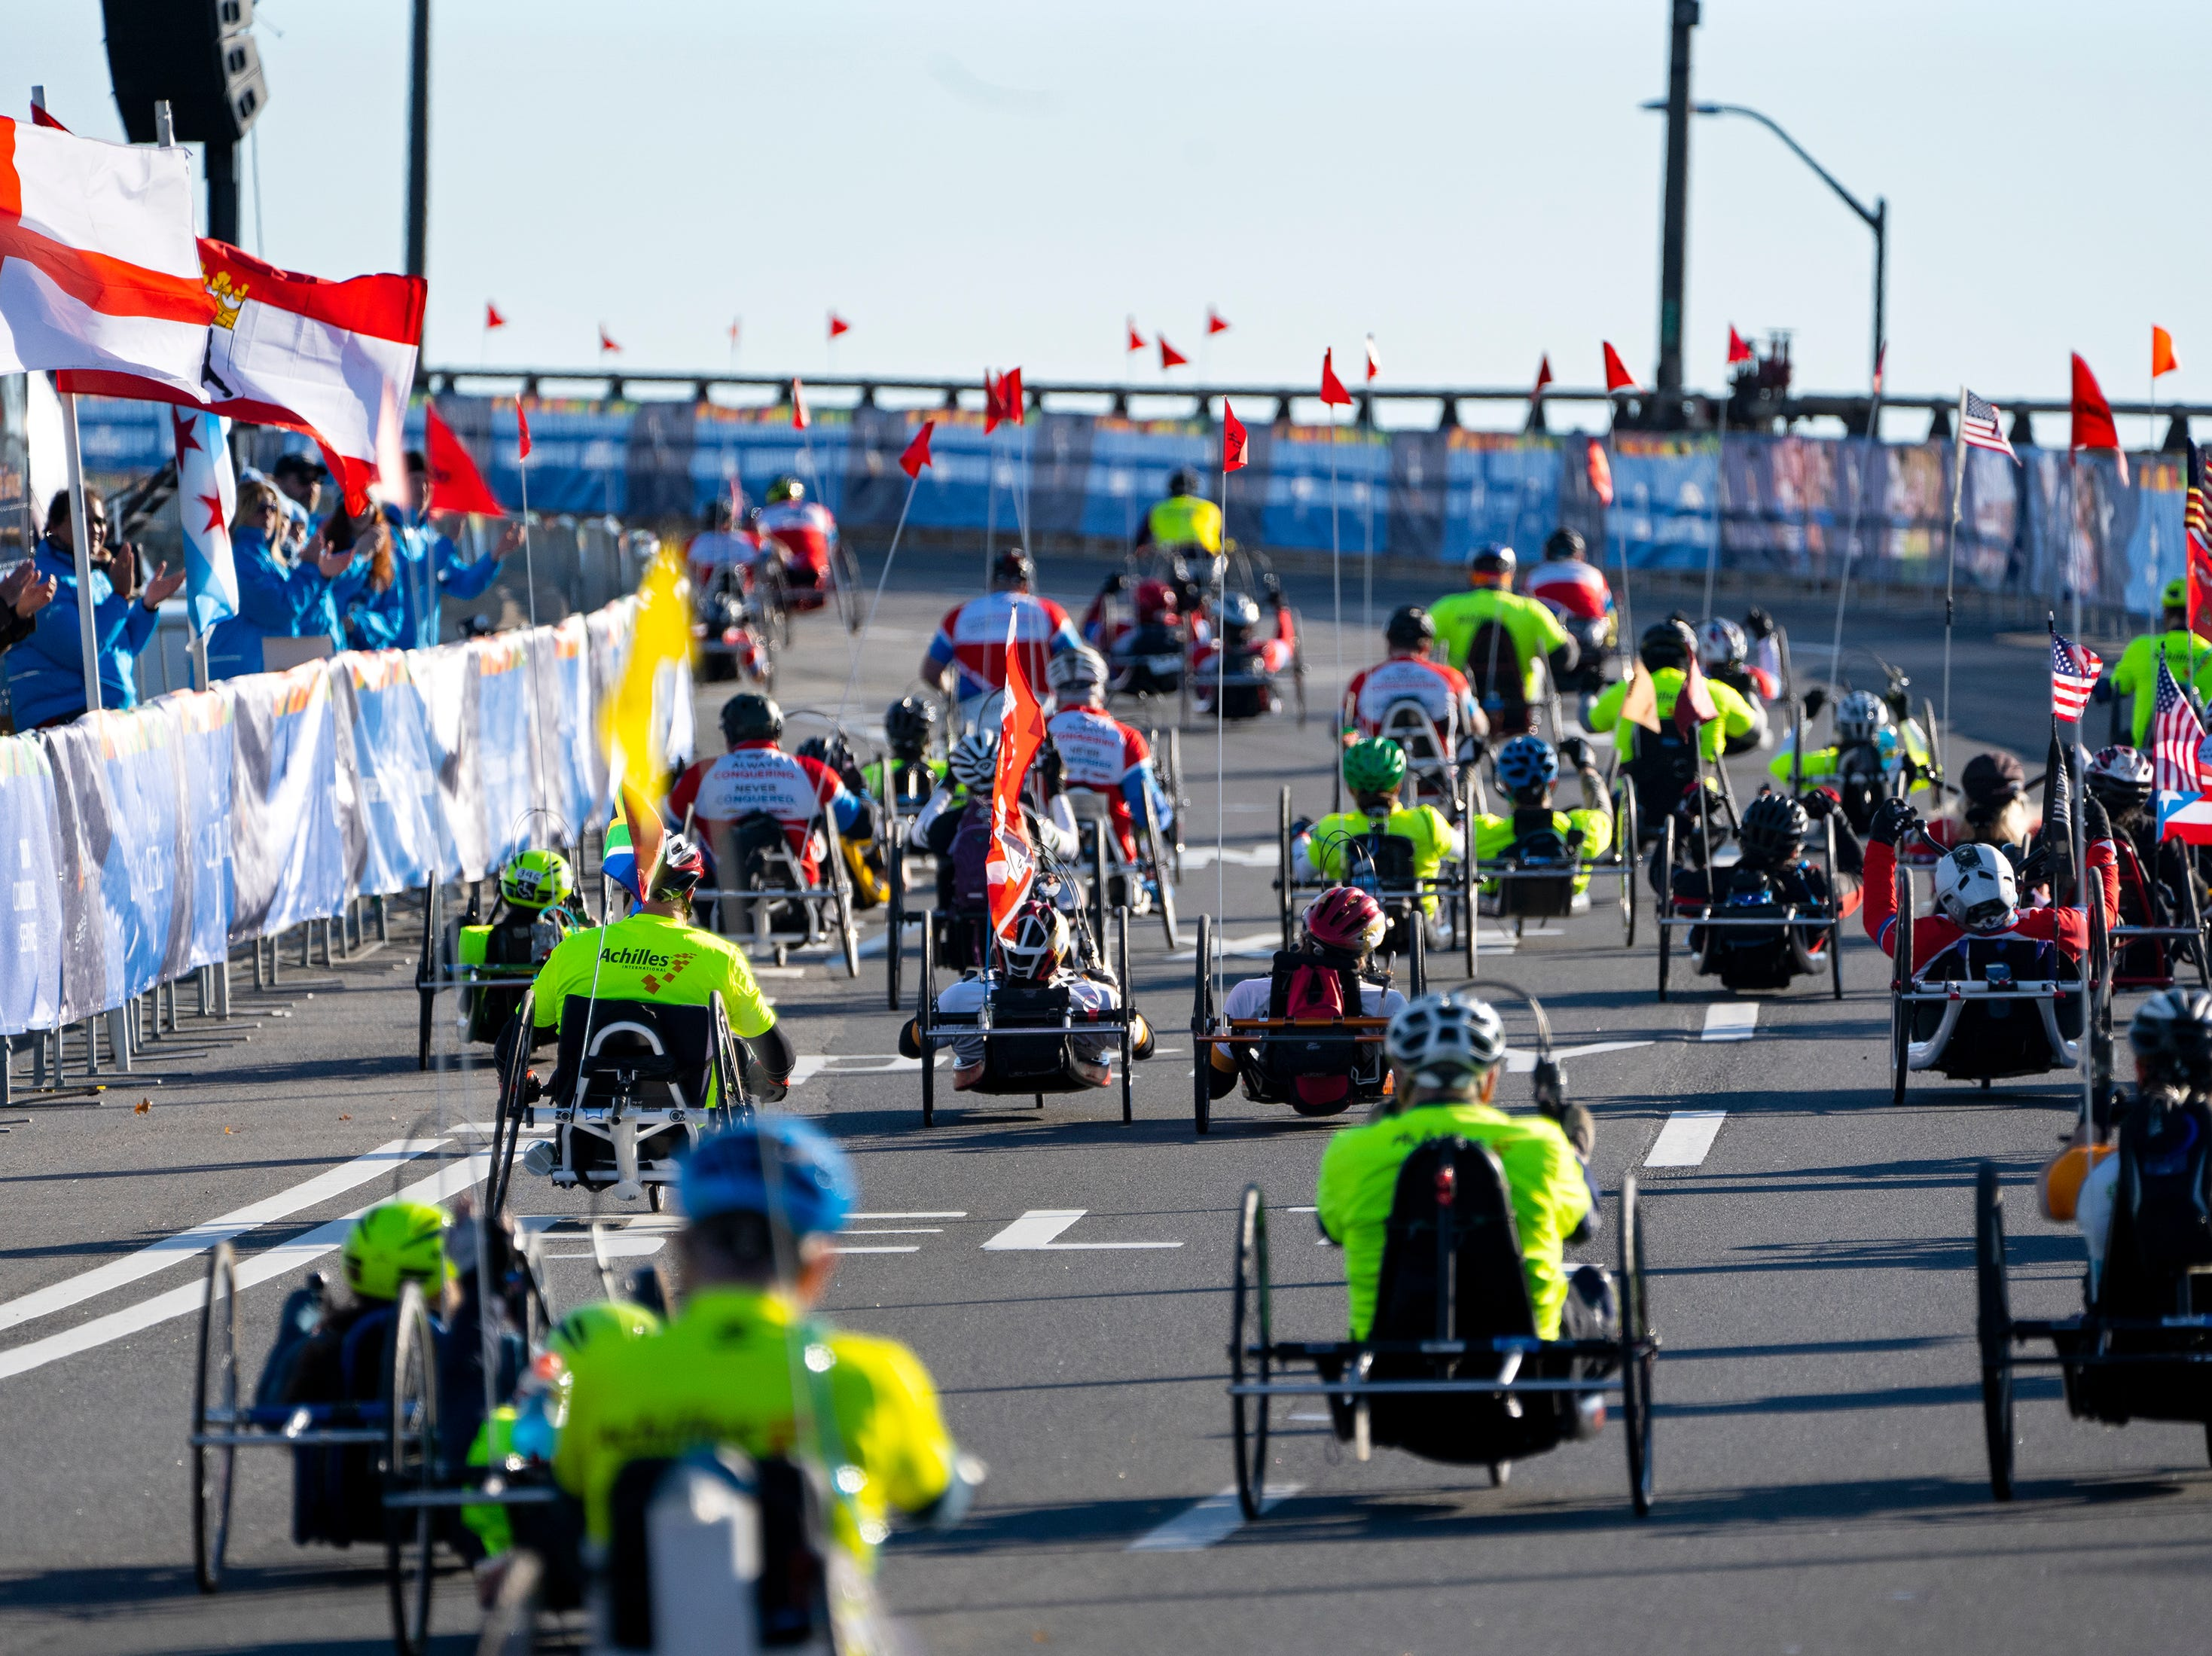 Competitors in the handcycle division leave the starting line during the New York City Marathon on Nov. 4.